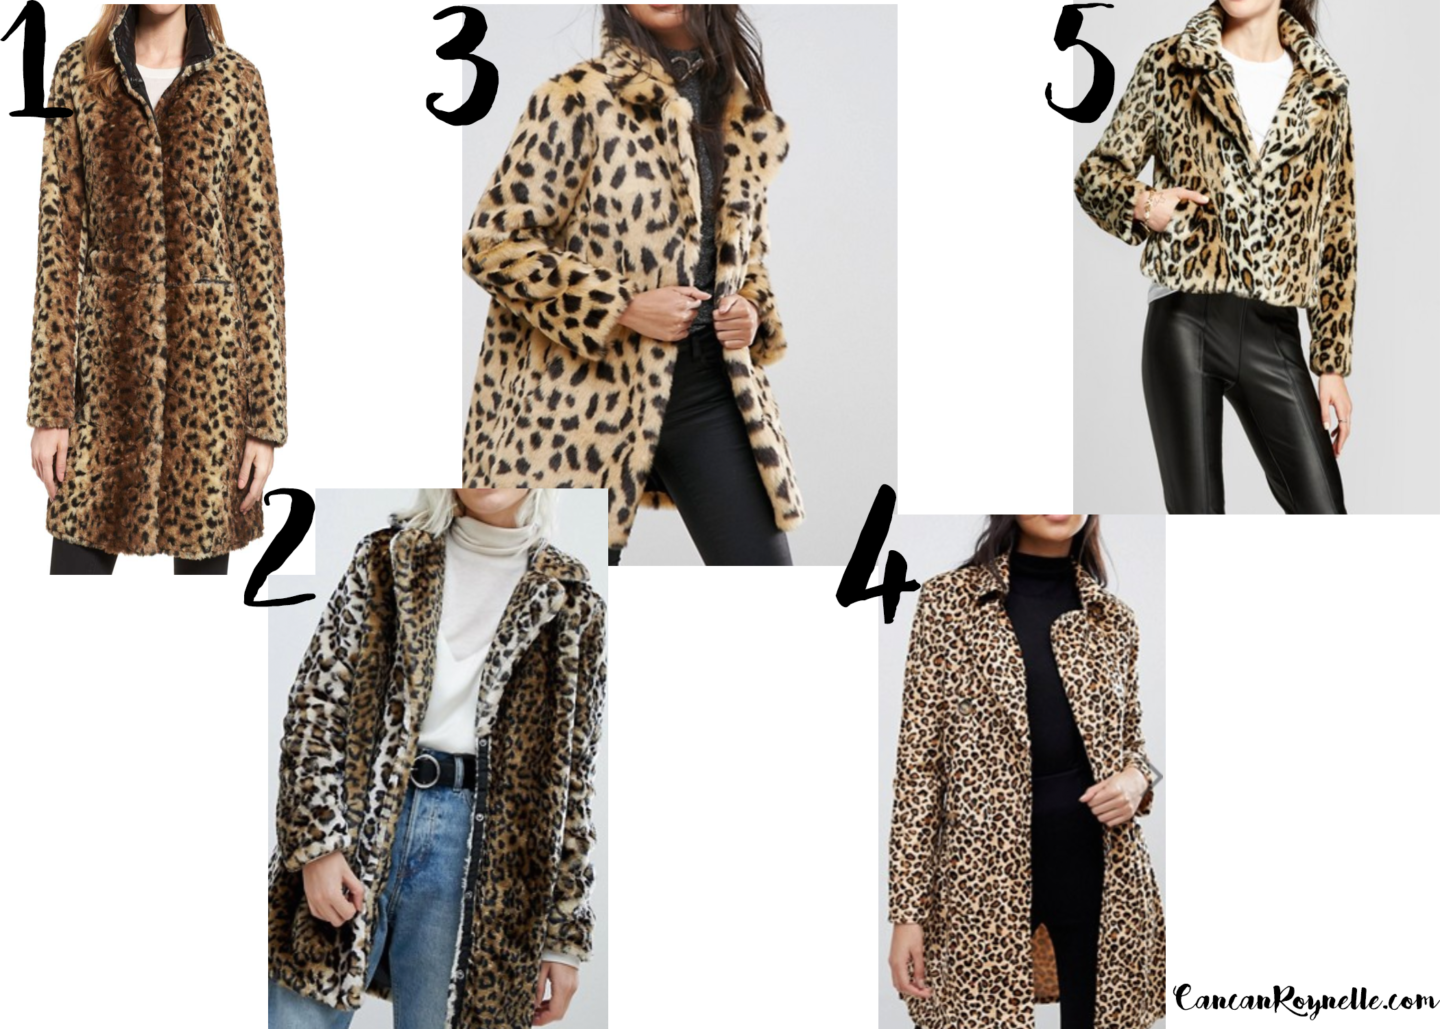 5 Leopard Print Coats that You Need || CancanRoynelle.com